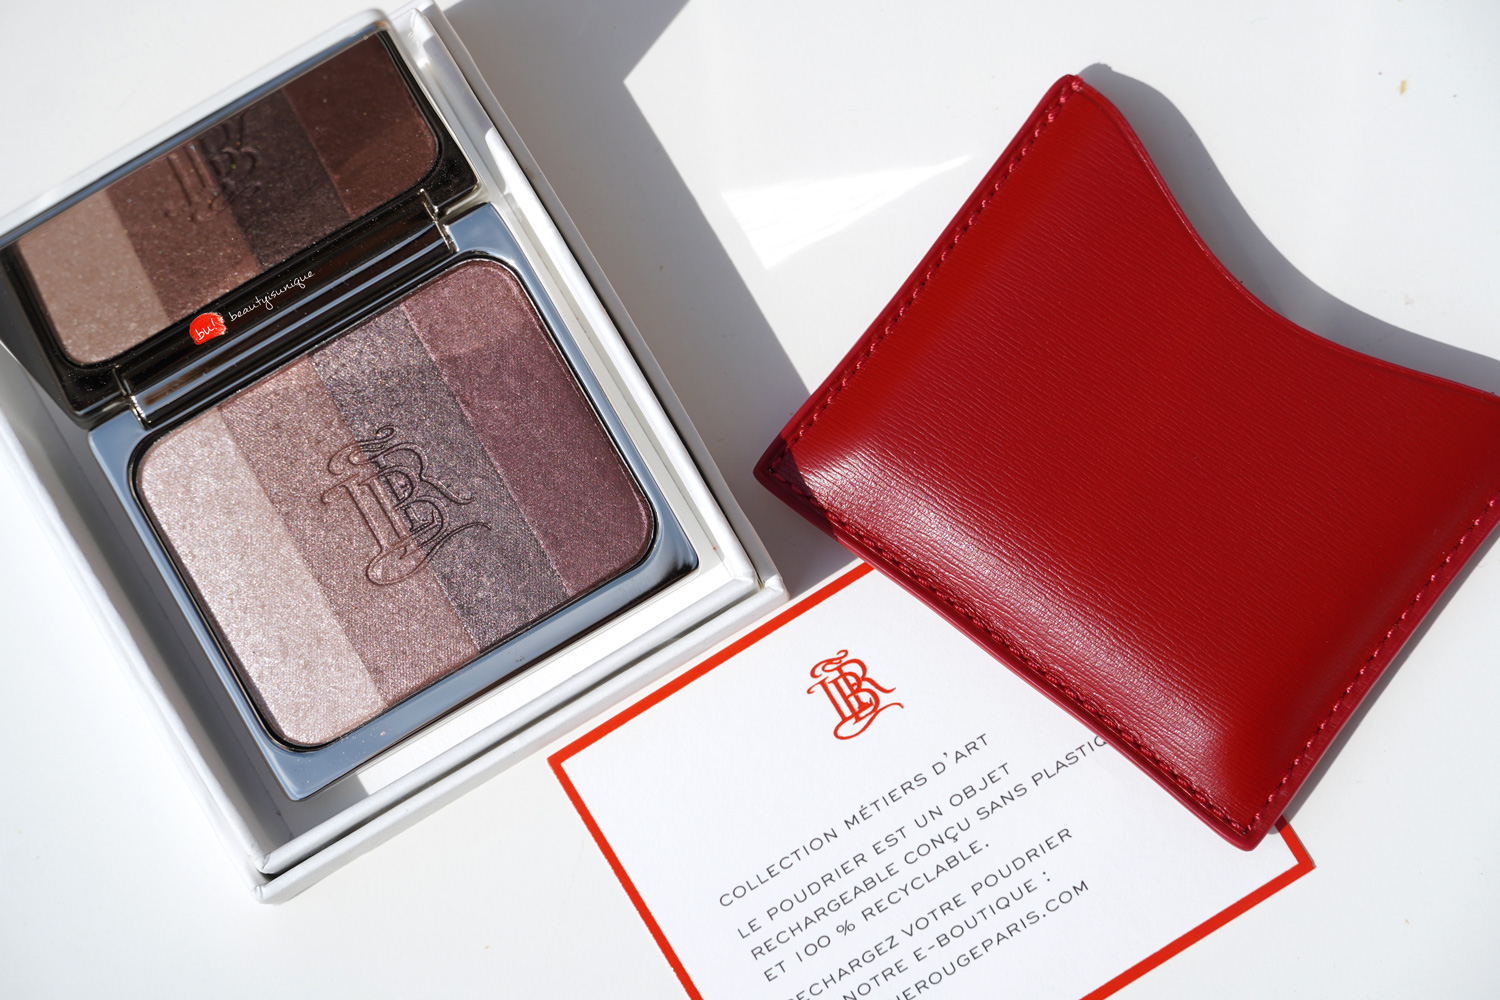 Le-bouge-rouge-les-ombres-aral-eyeshadow-palette